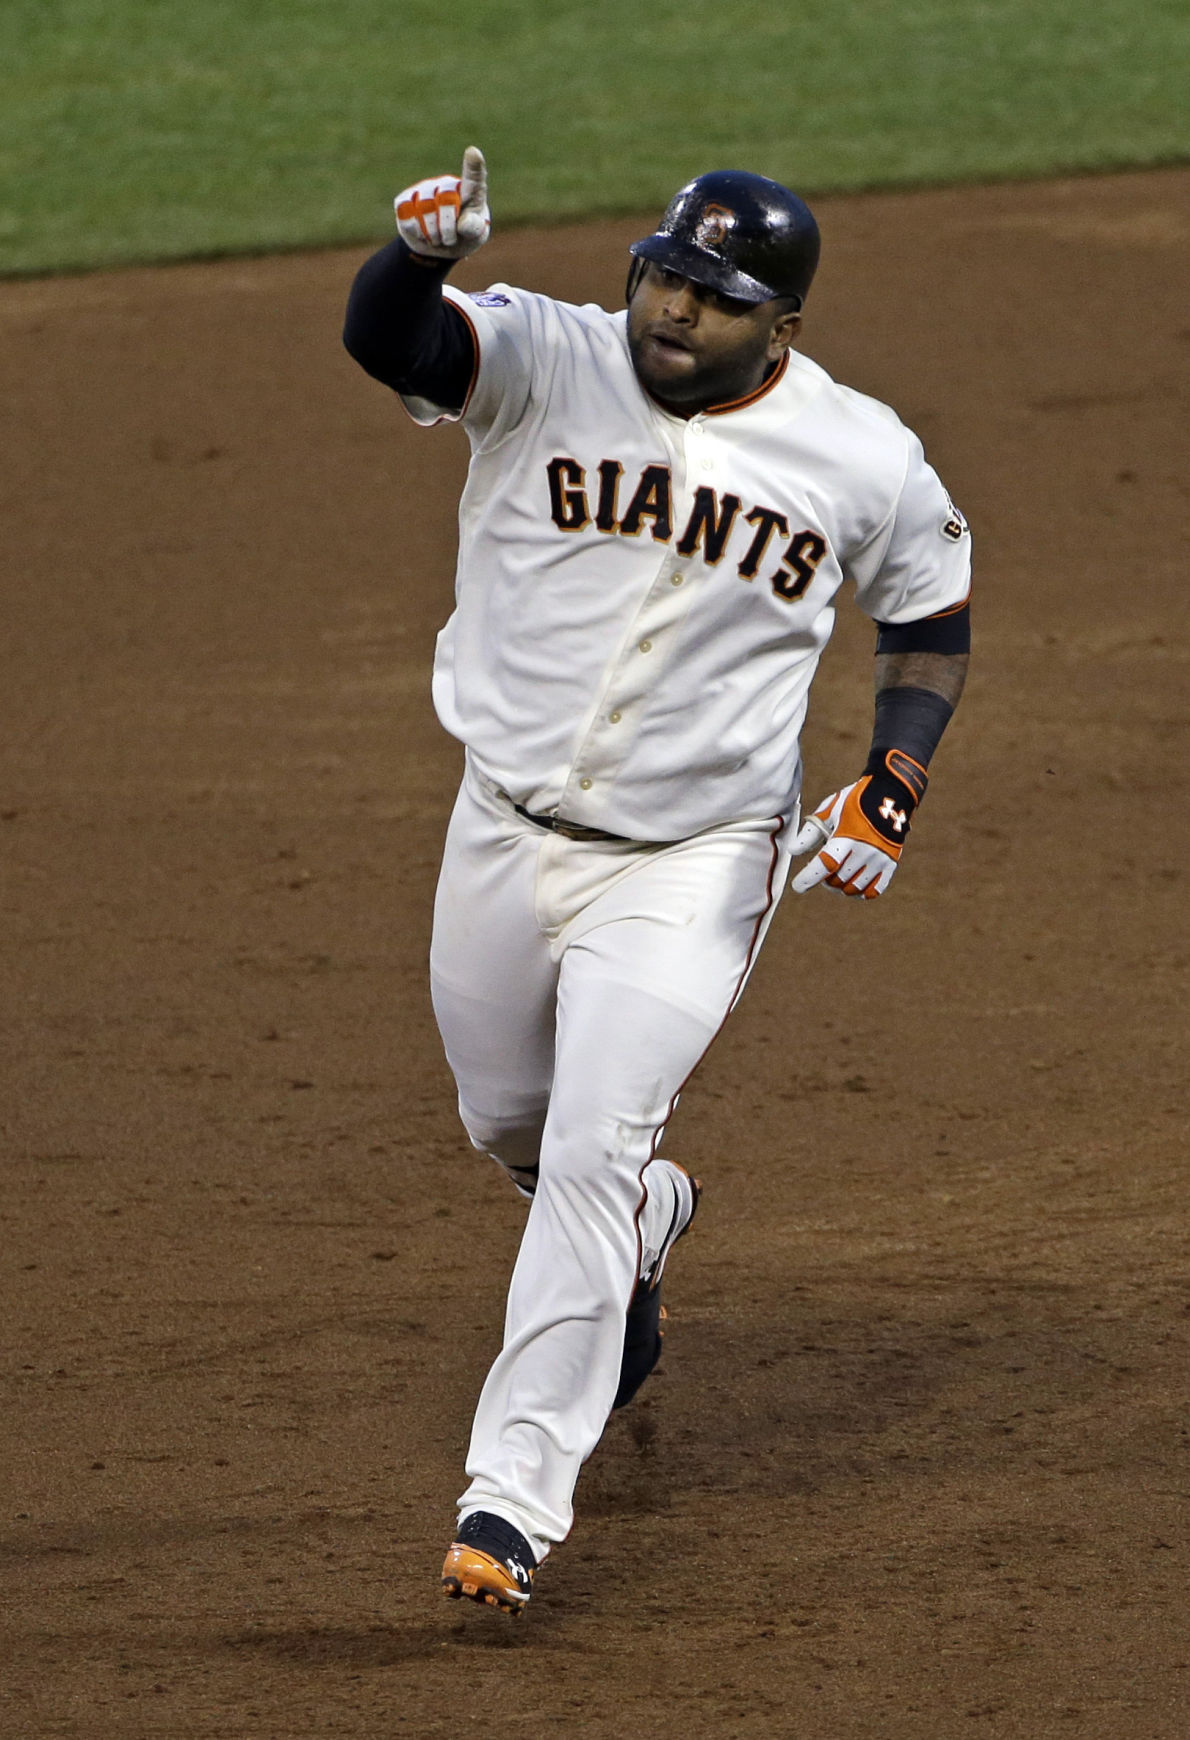 Giant Panda Power San Francisco's Sandoval smashes 3 homers in Game 1 win